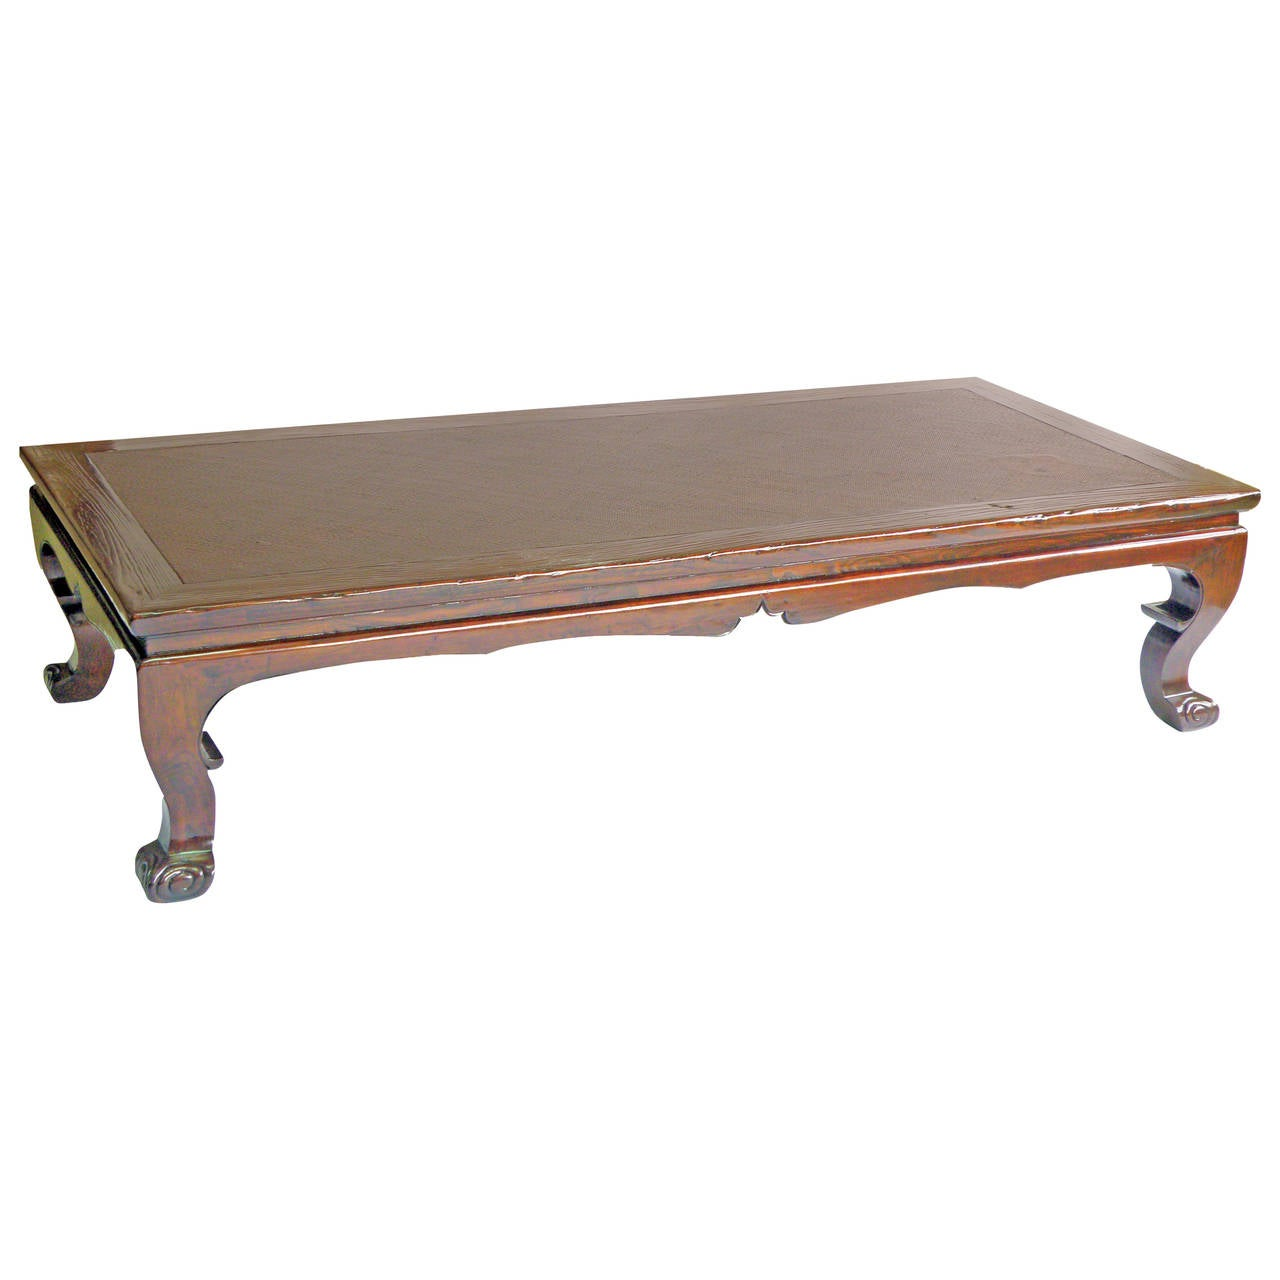 Large antique day bed low table or coffee table with cabriole legs chinoiserie for sale at 1stdibs Legs for a coffee table